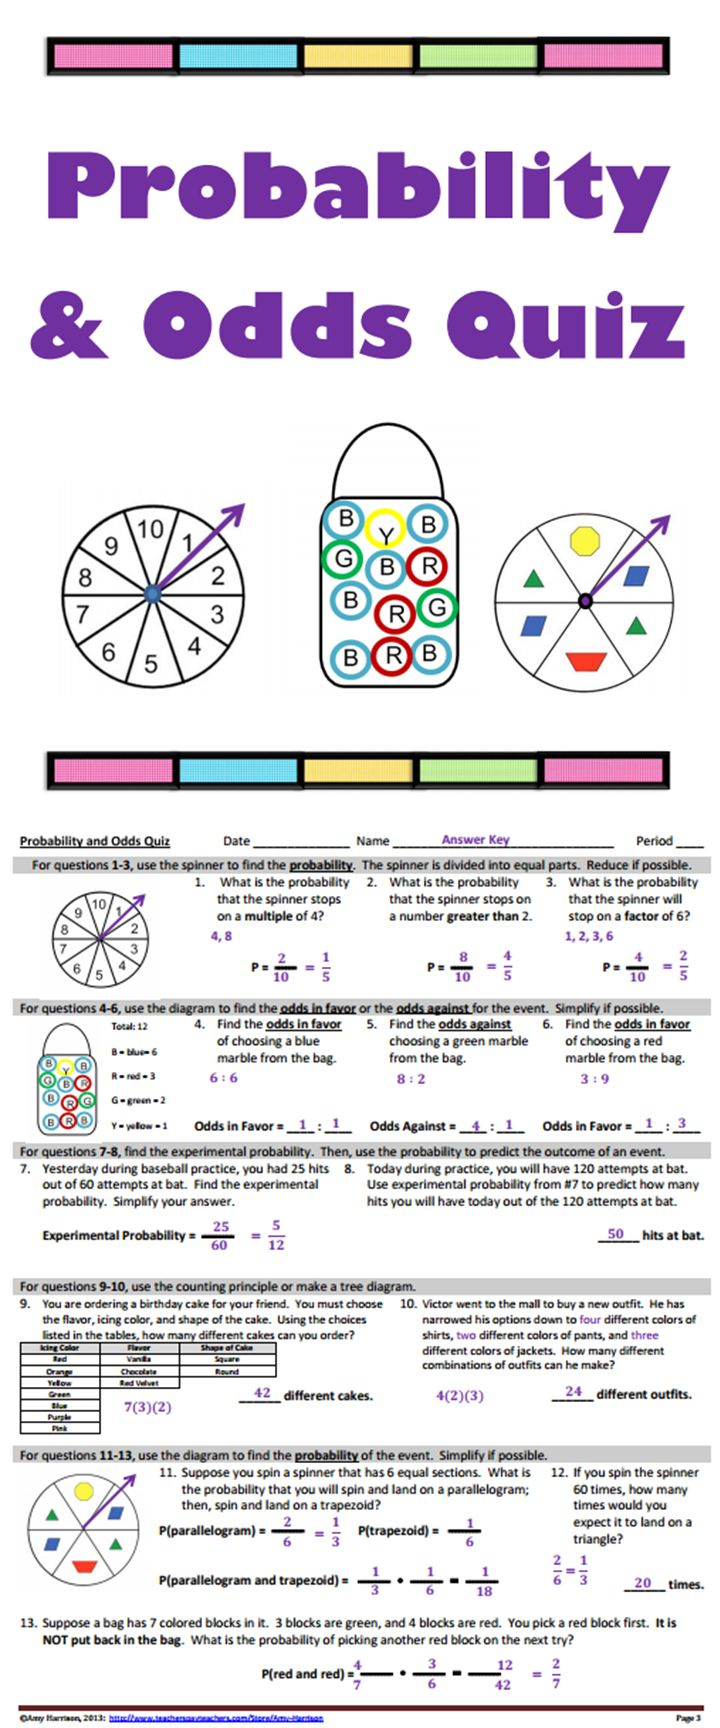 worksheet Experimental Probability Worksheets 17 images about school probability on pinterest trees math and odds quiz topics spin a spinner draw from